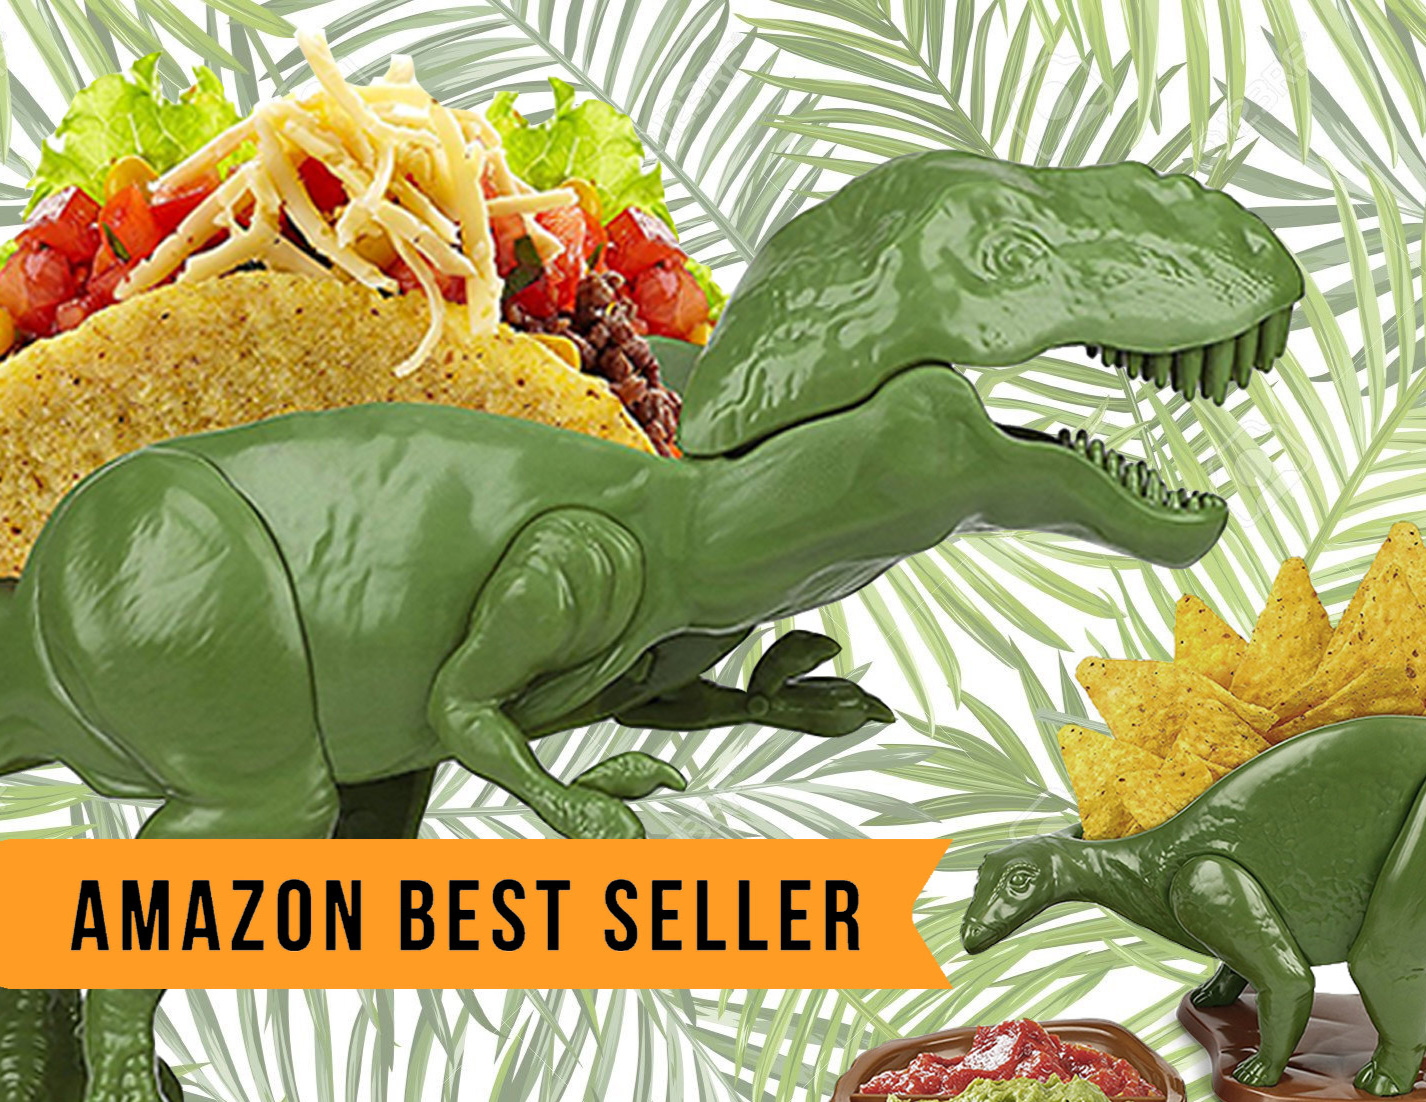 Dino Snack Holders - A Family of Best Sellers